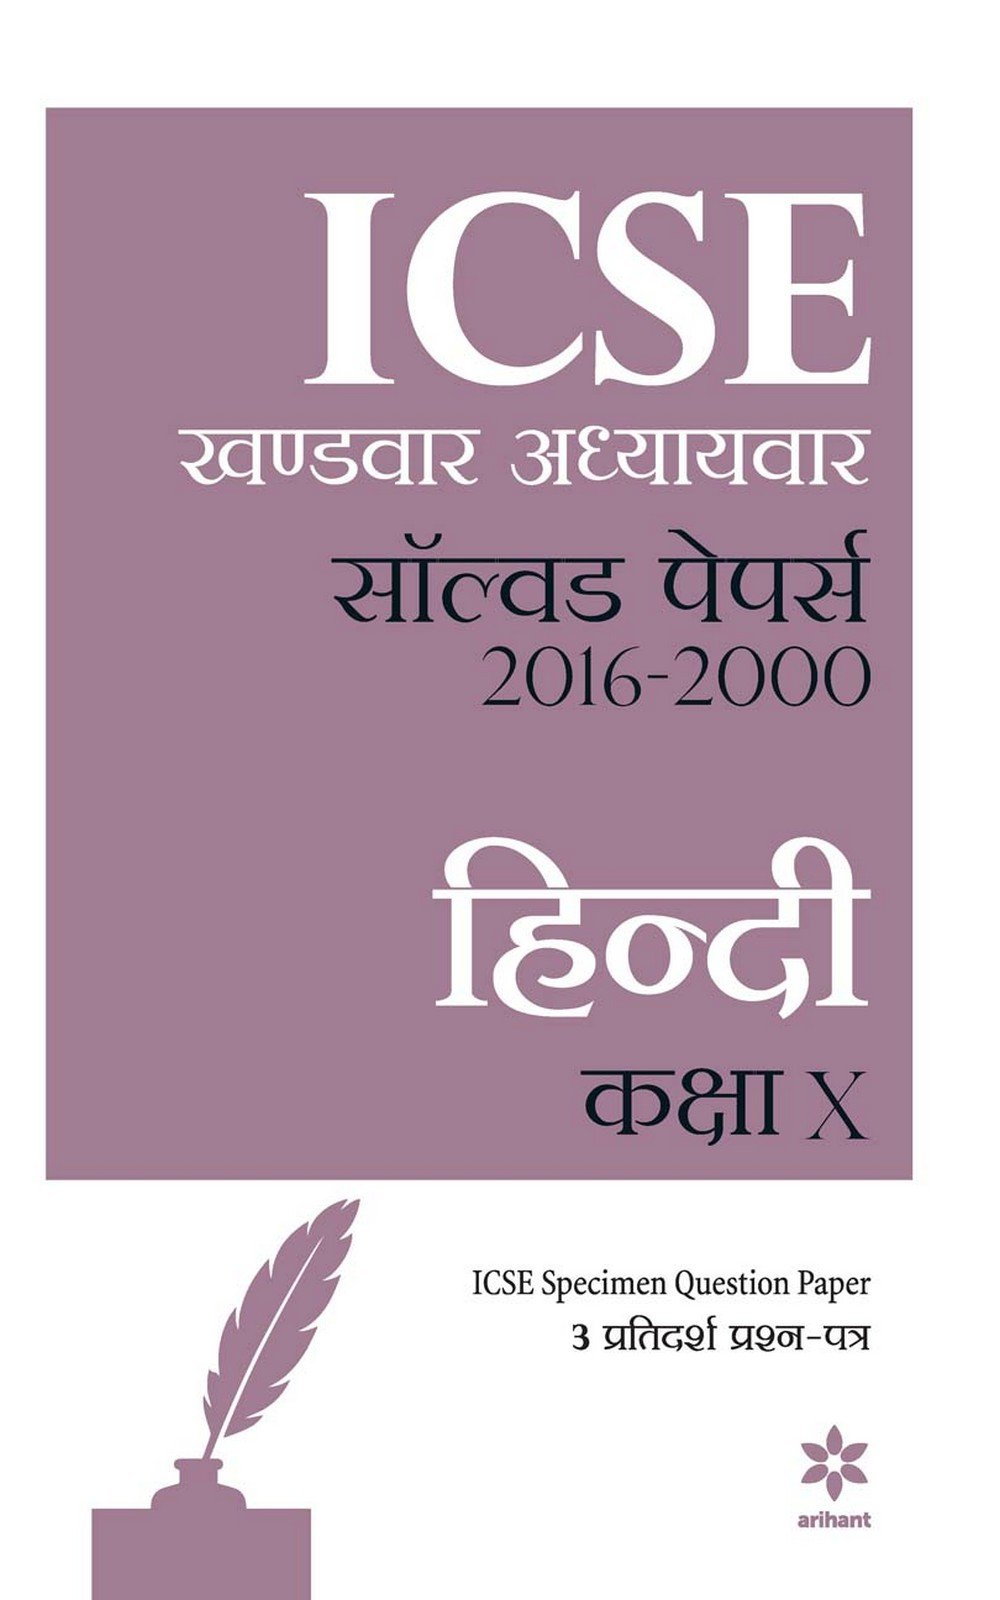 Buy Icse Khandwar Adhyaywar Solved Papers 2016 2000 Hindi Class 10